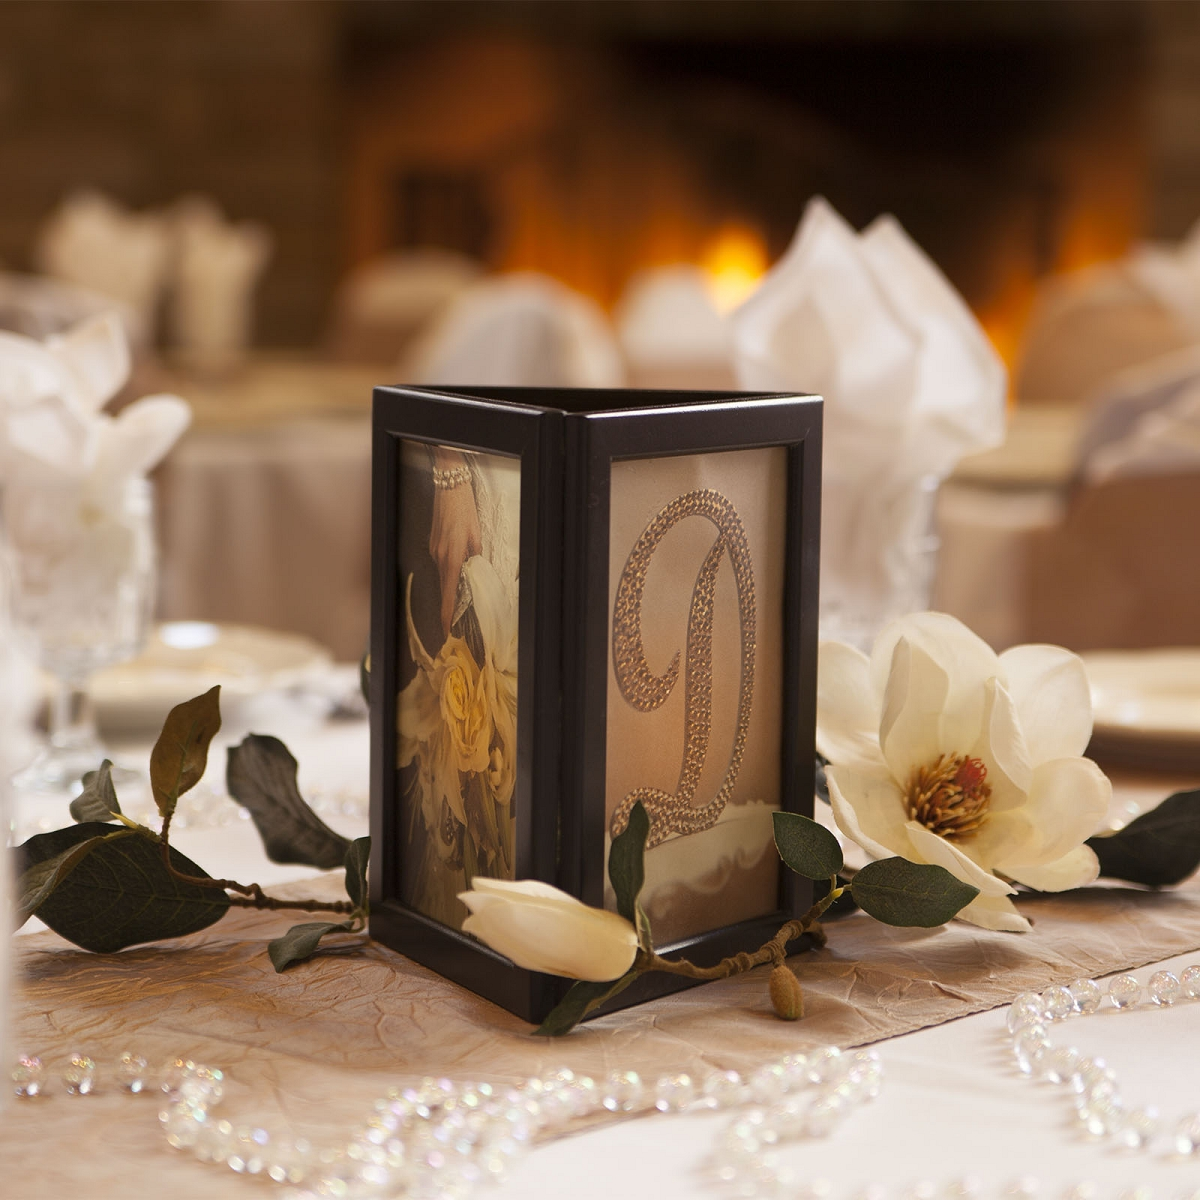 Stunning picture frame centerpieces for weddings photos